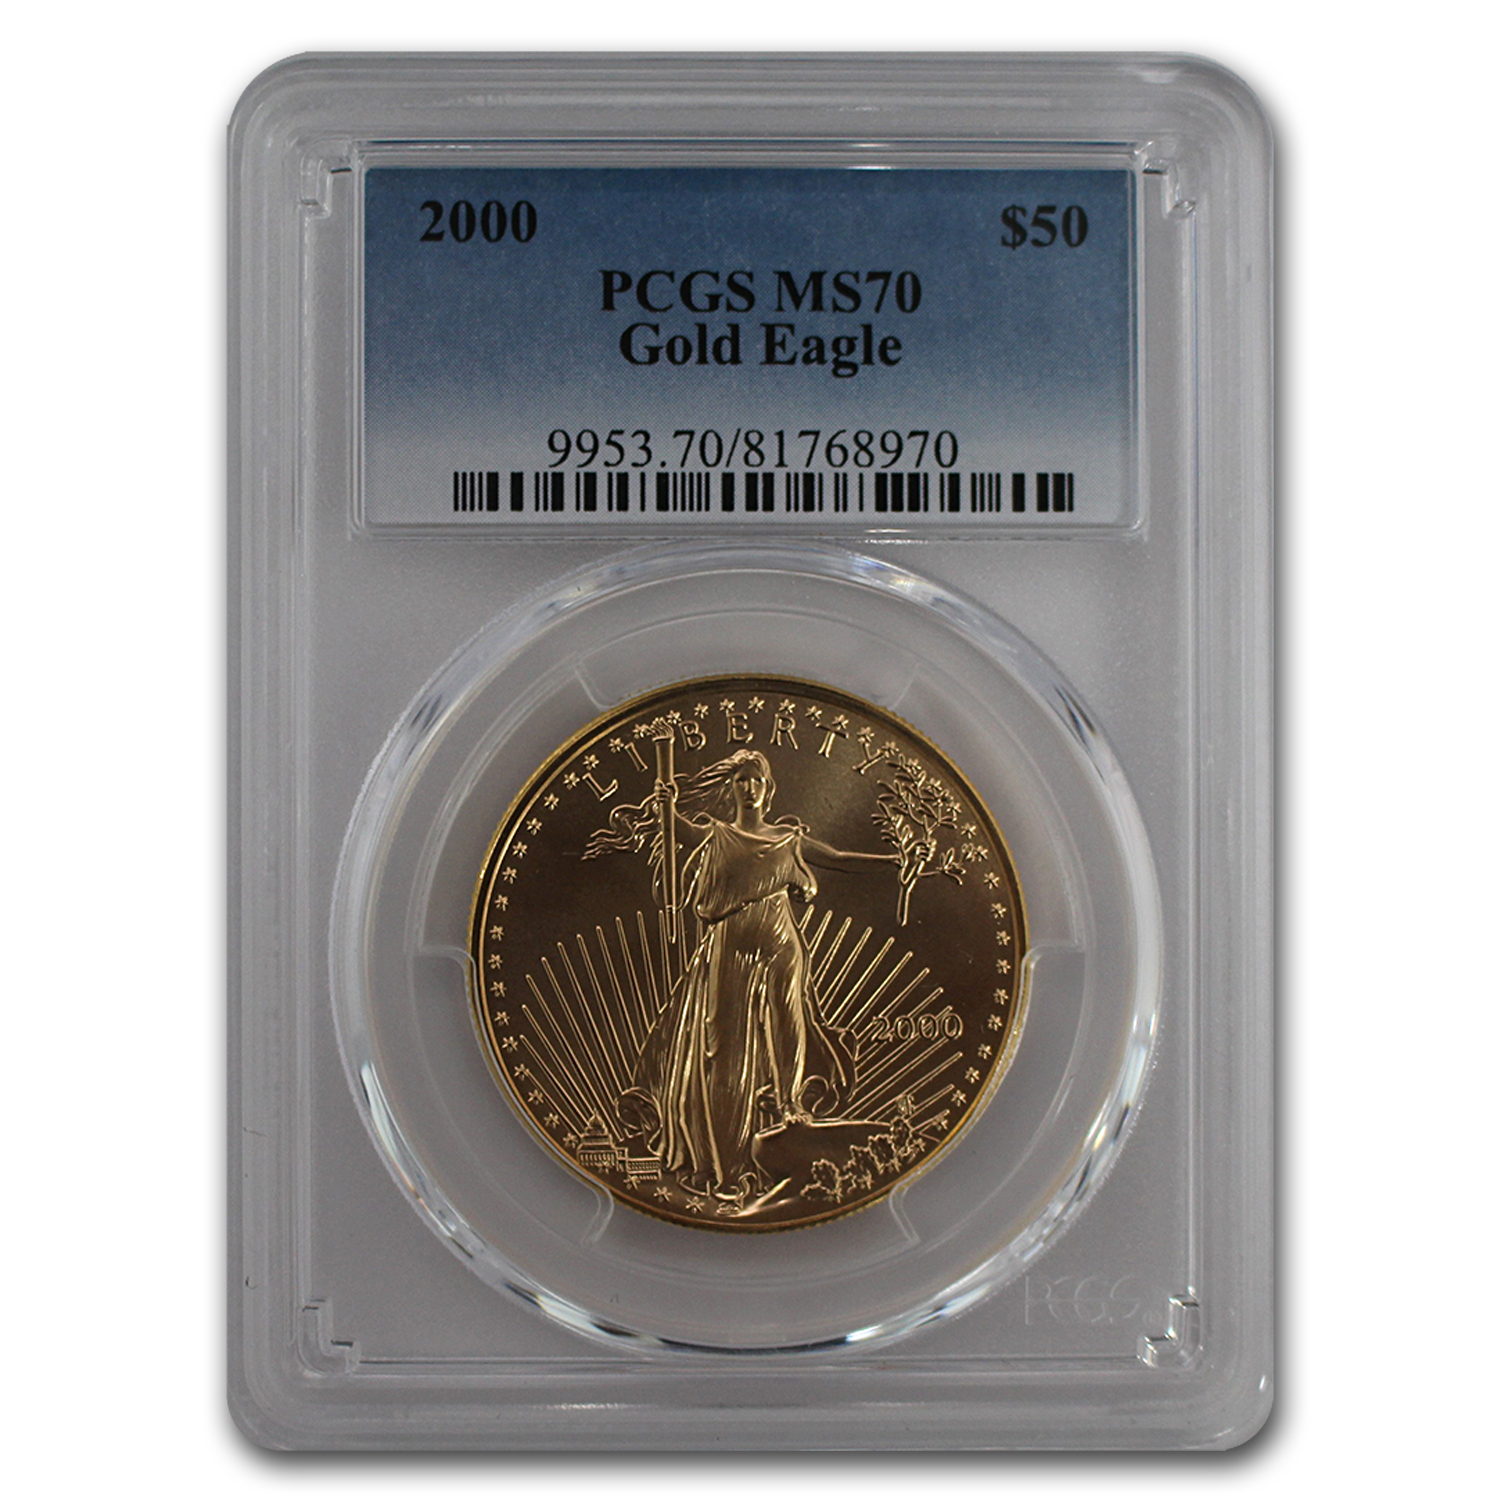 2000 1 oz Gold American Eagle MS-70 PCGS (Registry Coin)